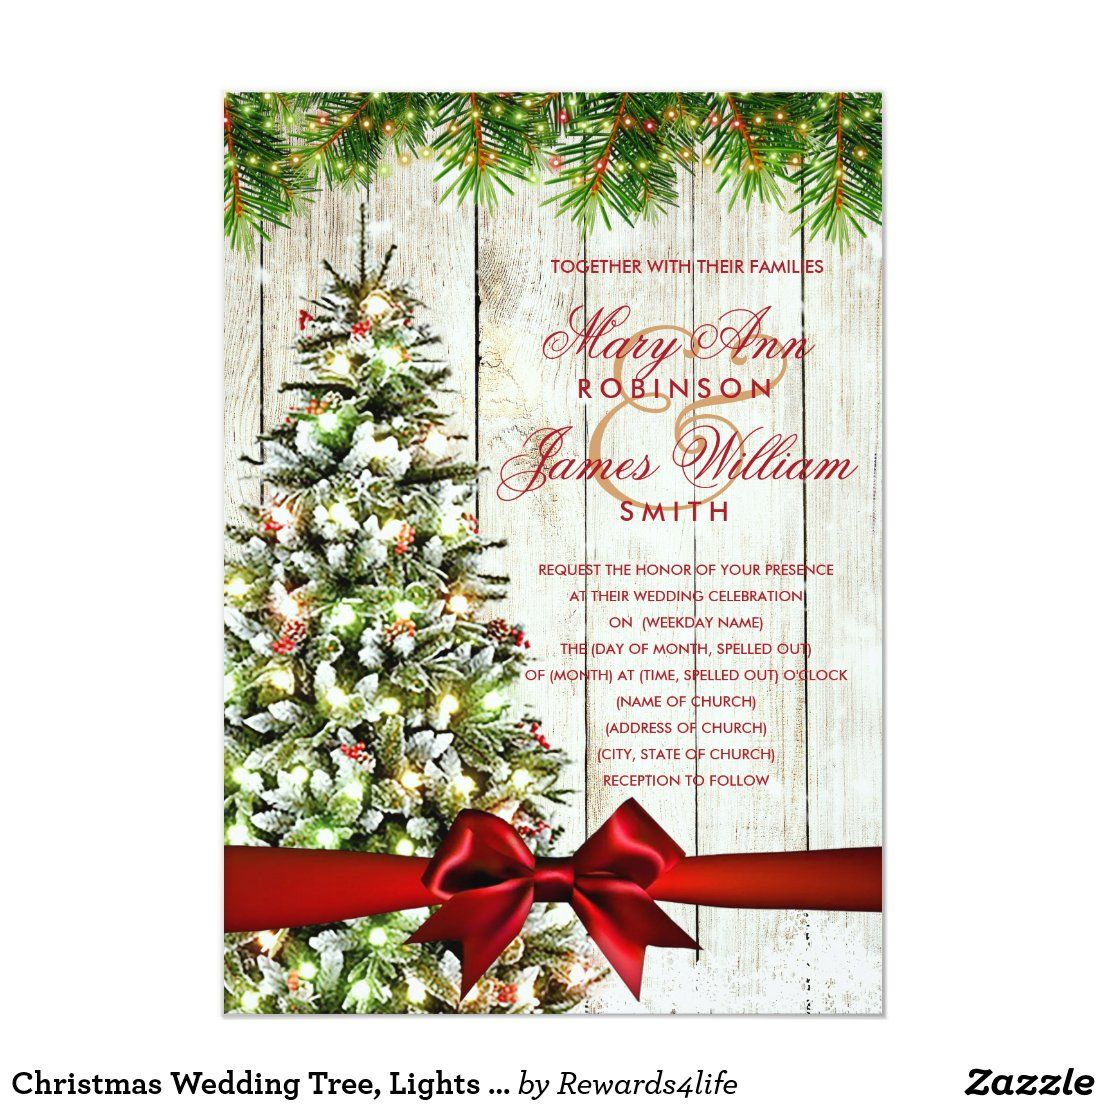 A Wedding For Christmas 2021 Christmas Wedding Tree Lights Red Ribbon Invitation Zazzle Com In 2021 Christmas Wedding Invitations Christmas Wedding Flowers Christmas Wedding Centerpieces